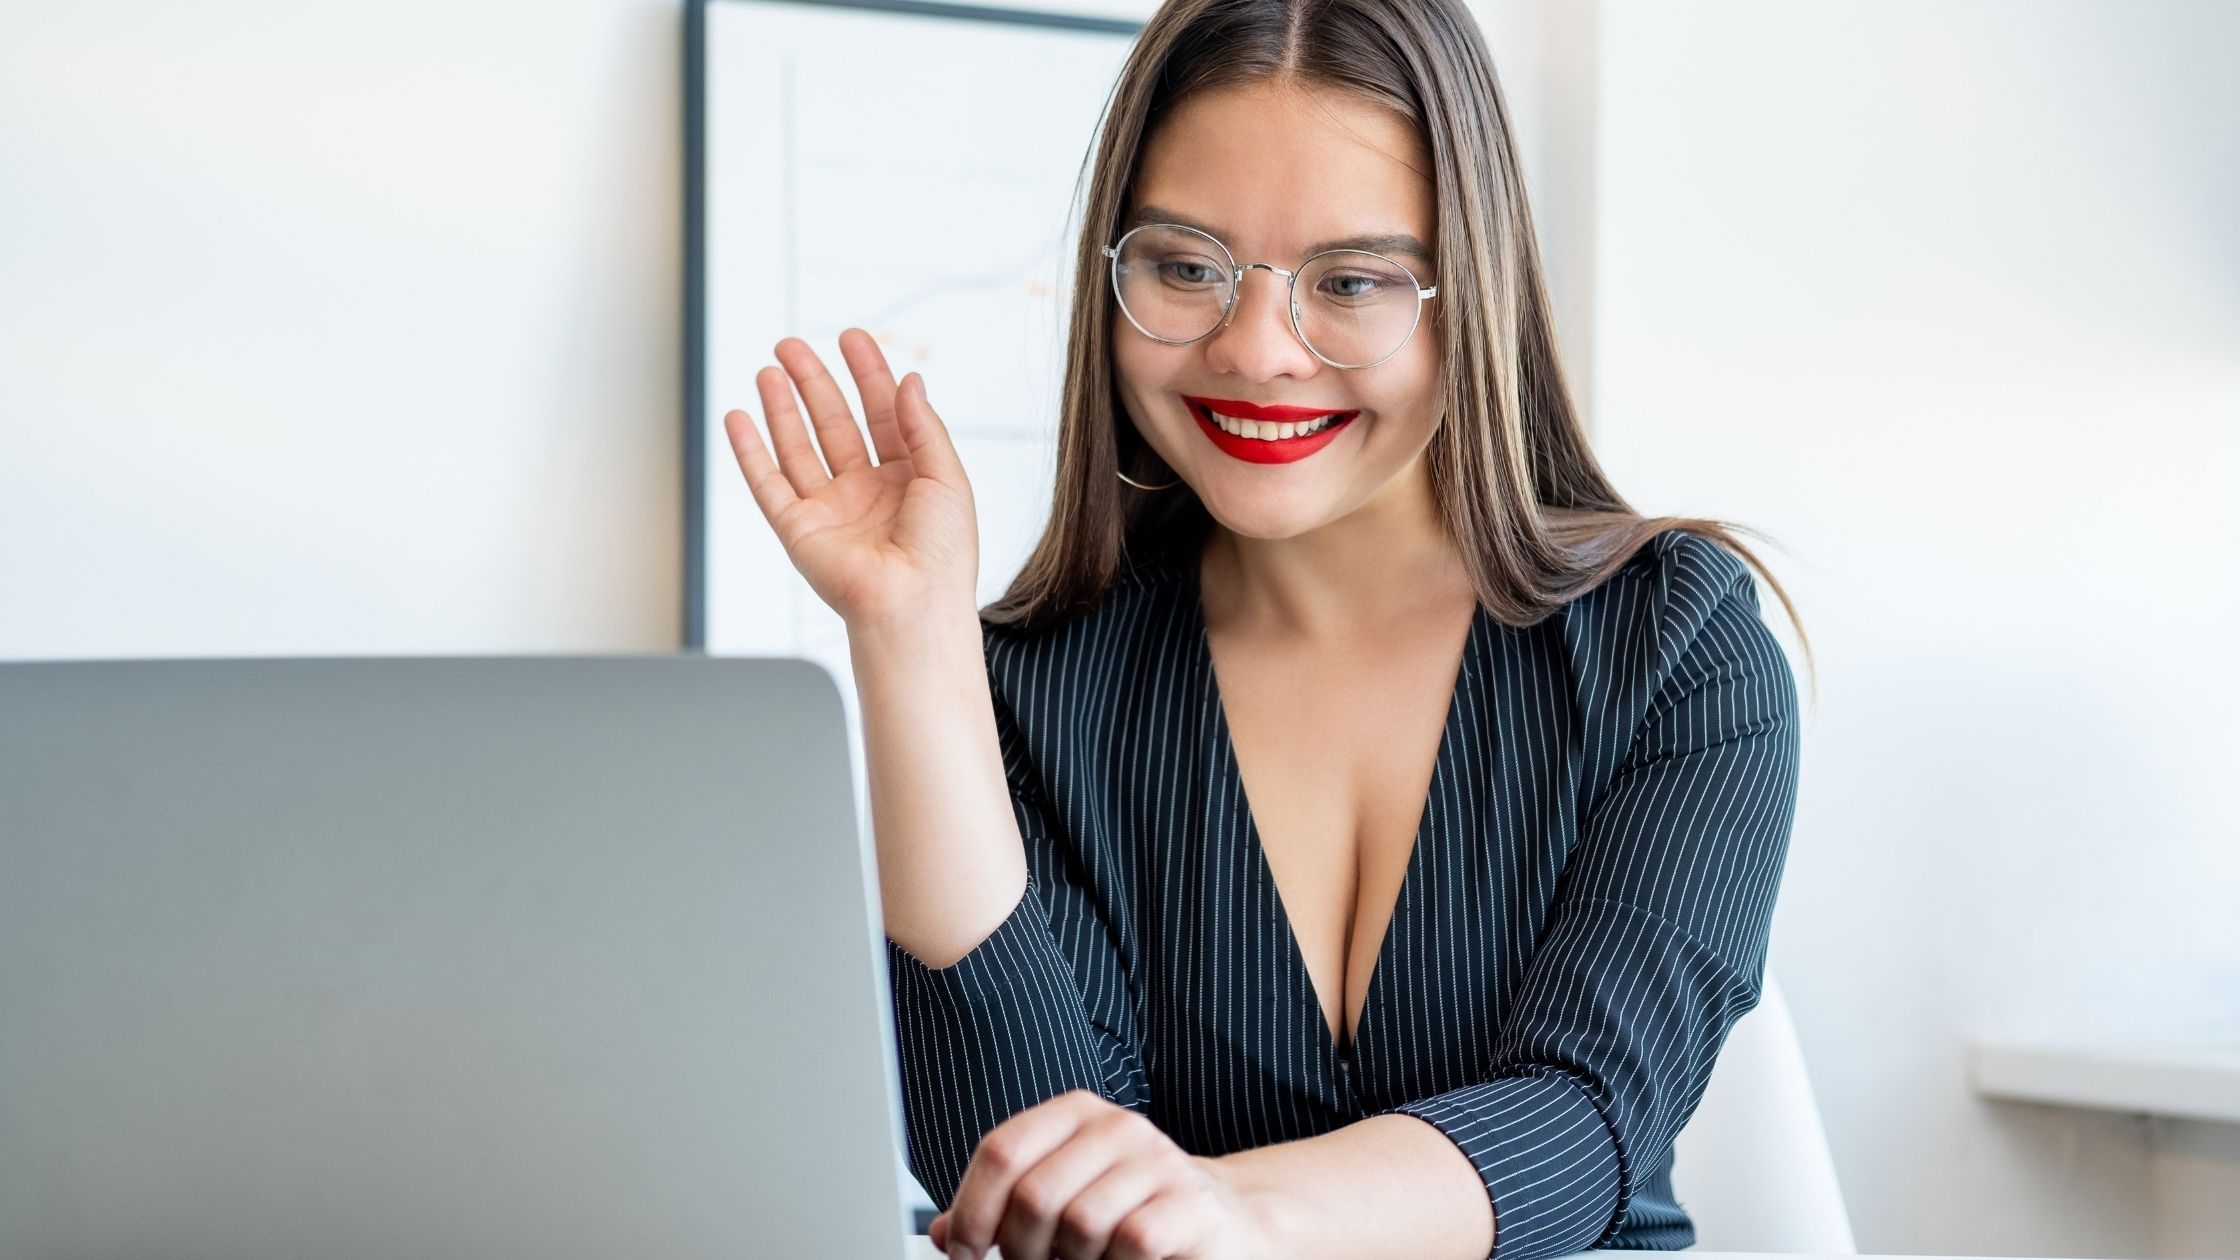 Woman with brown hair parted in the center. She is wearing a pinstripe blouse and red lipstick and glasses. She is waving hello on a zoom call on her laptop.